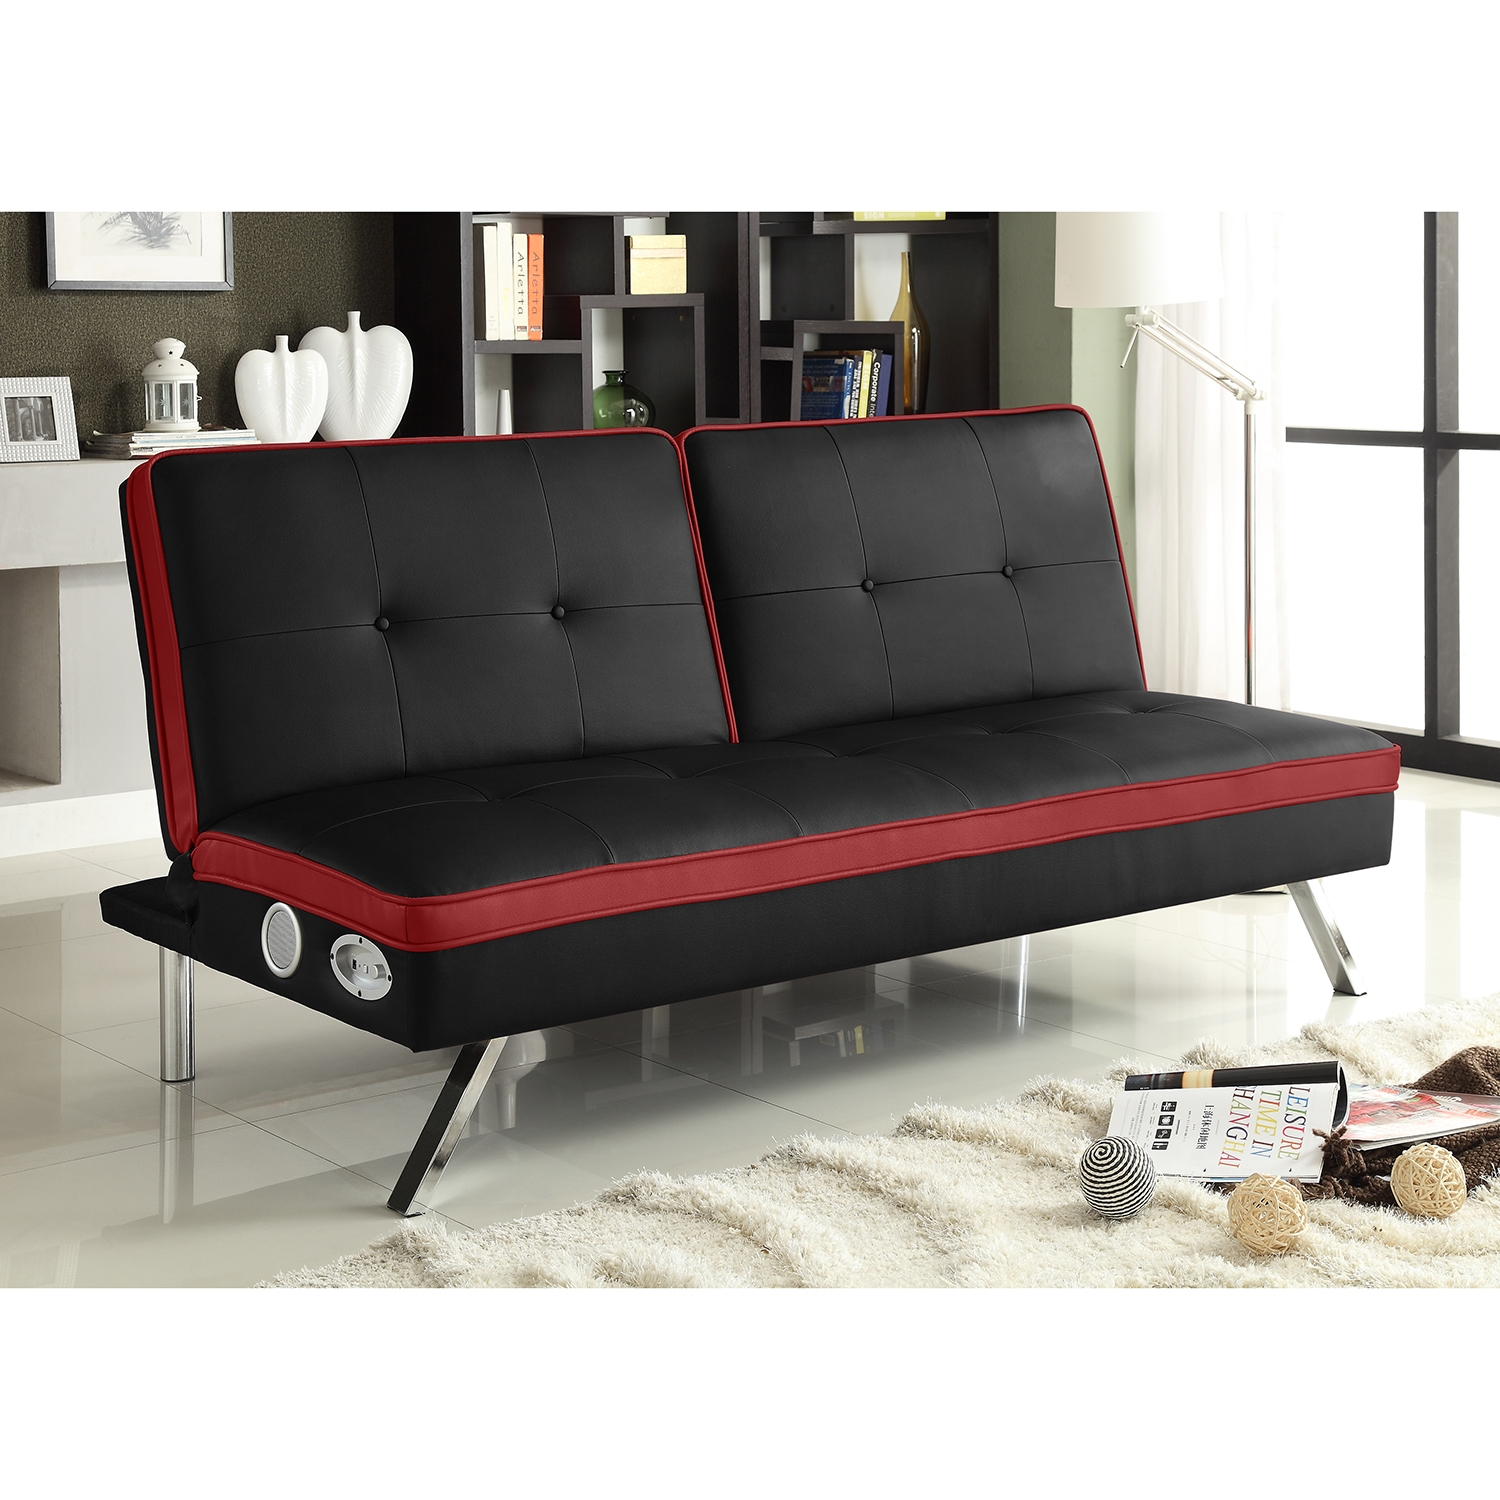 Louis Futon Black and Red